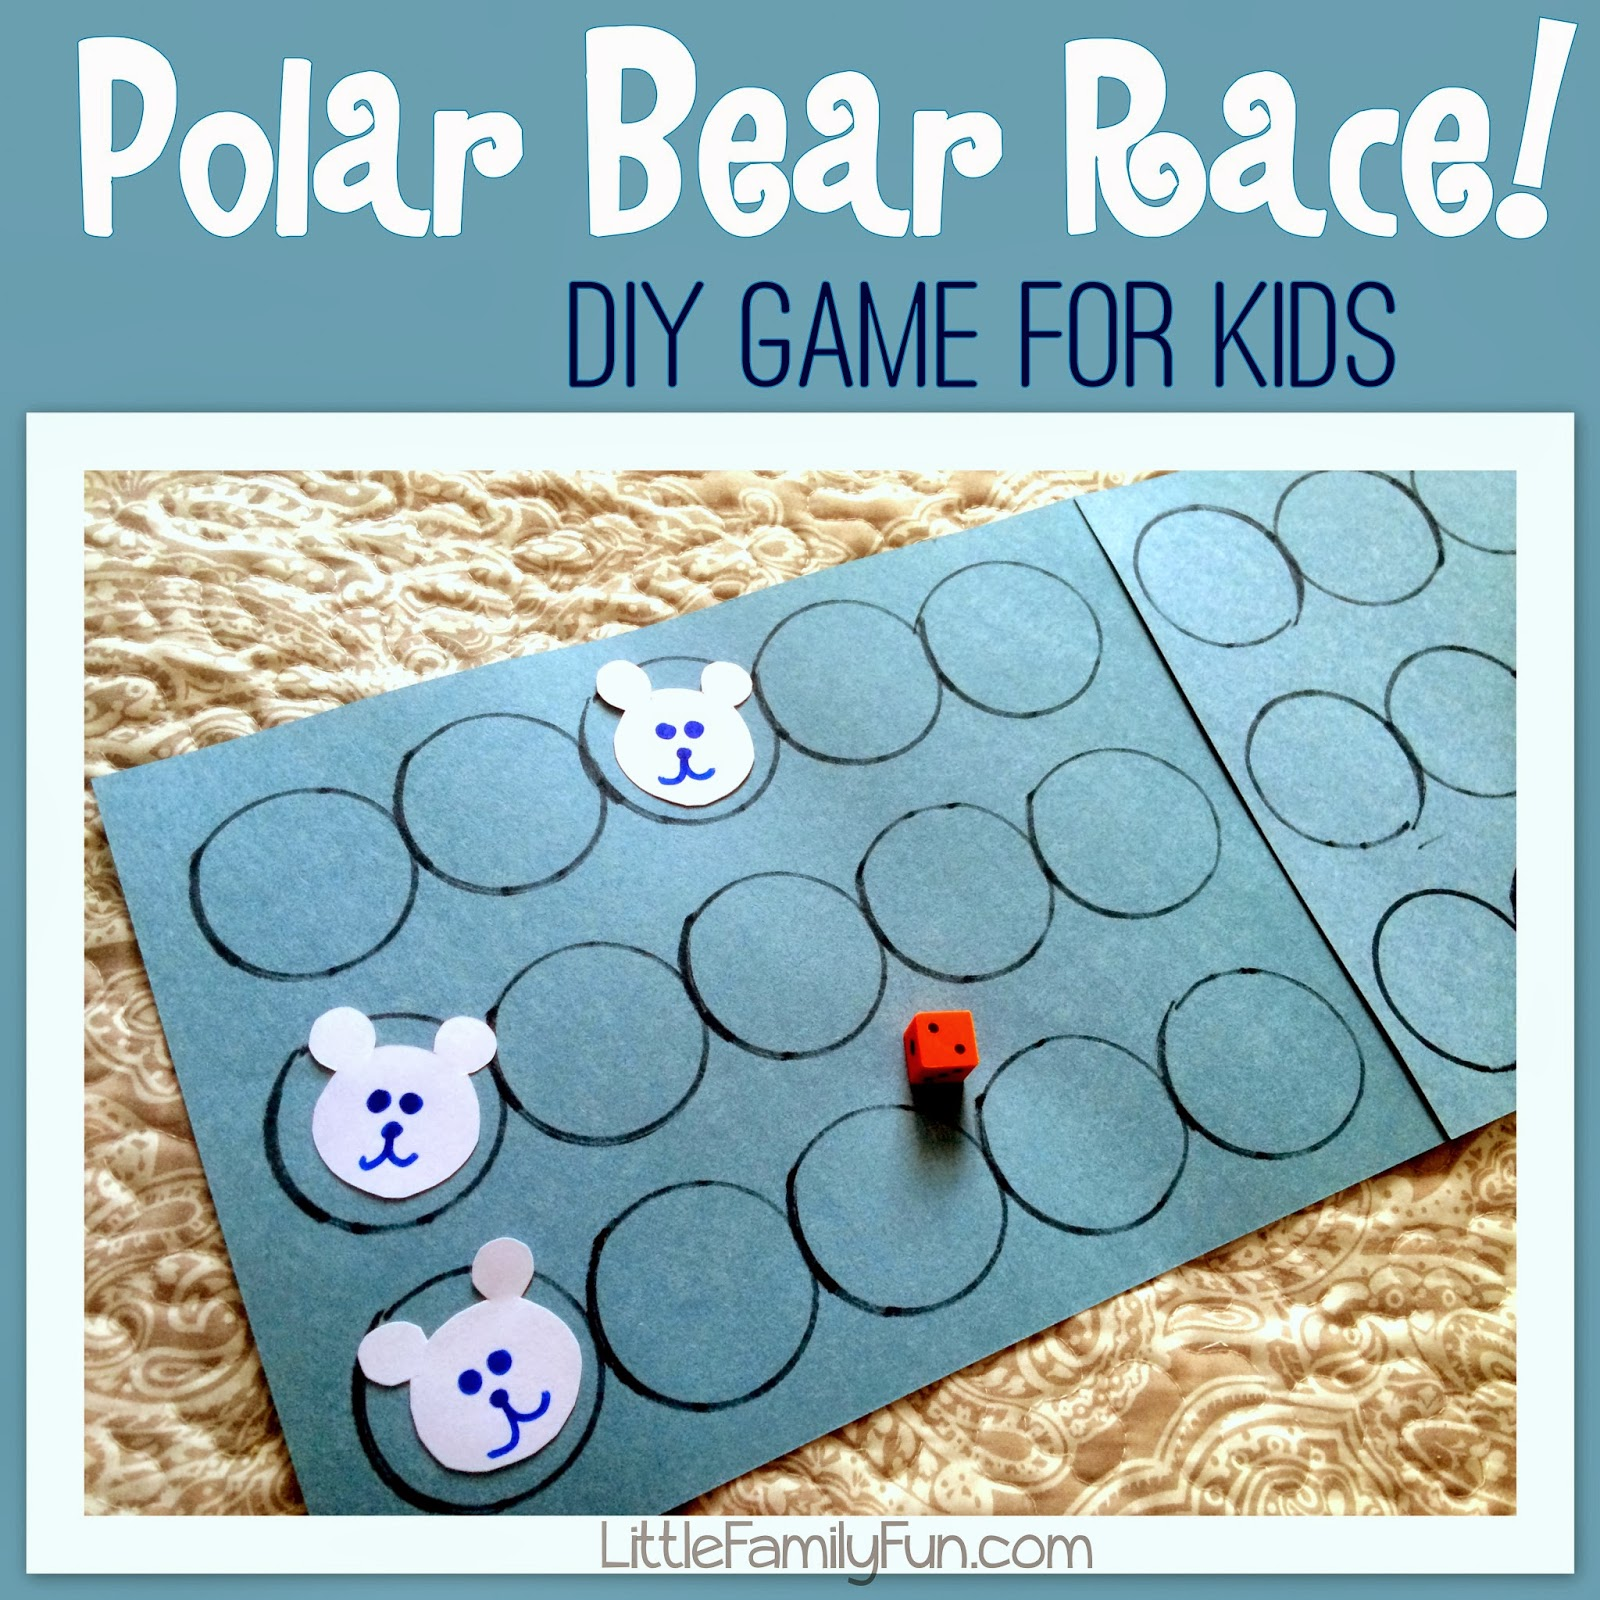 Our final polar bear activity was this simple game